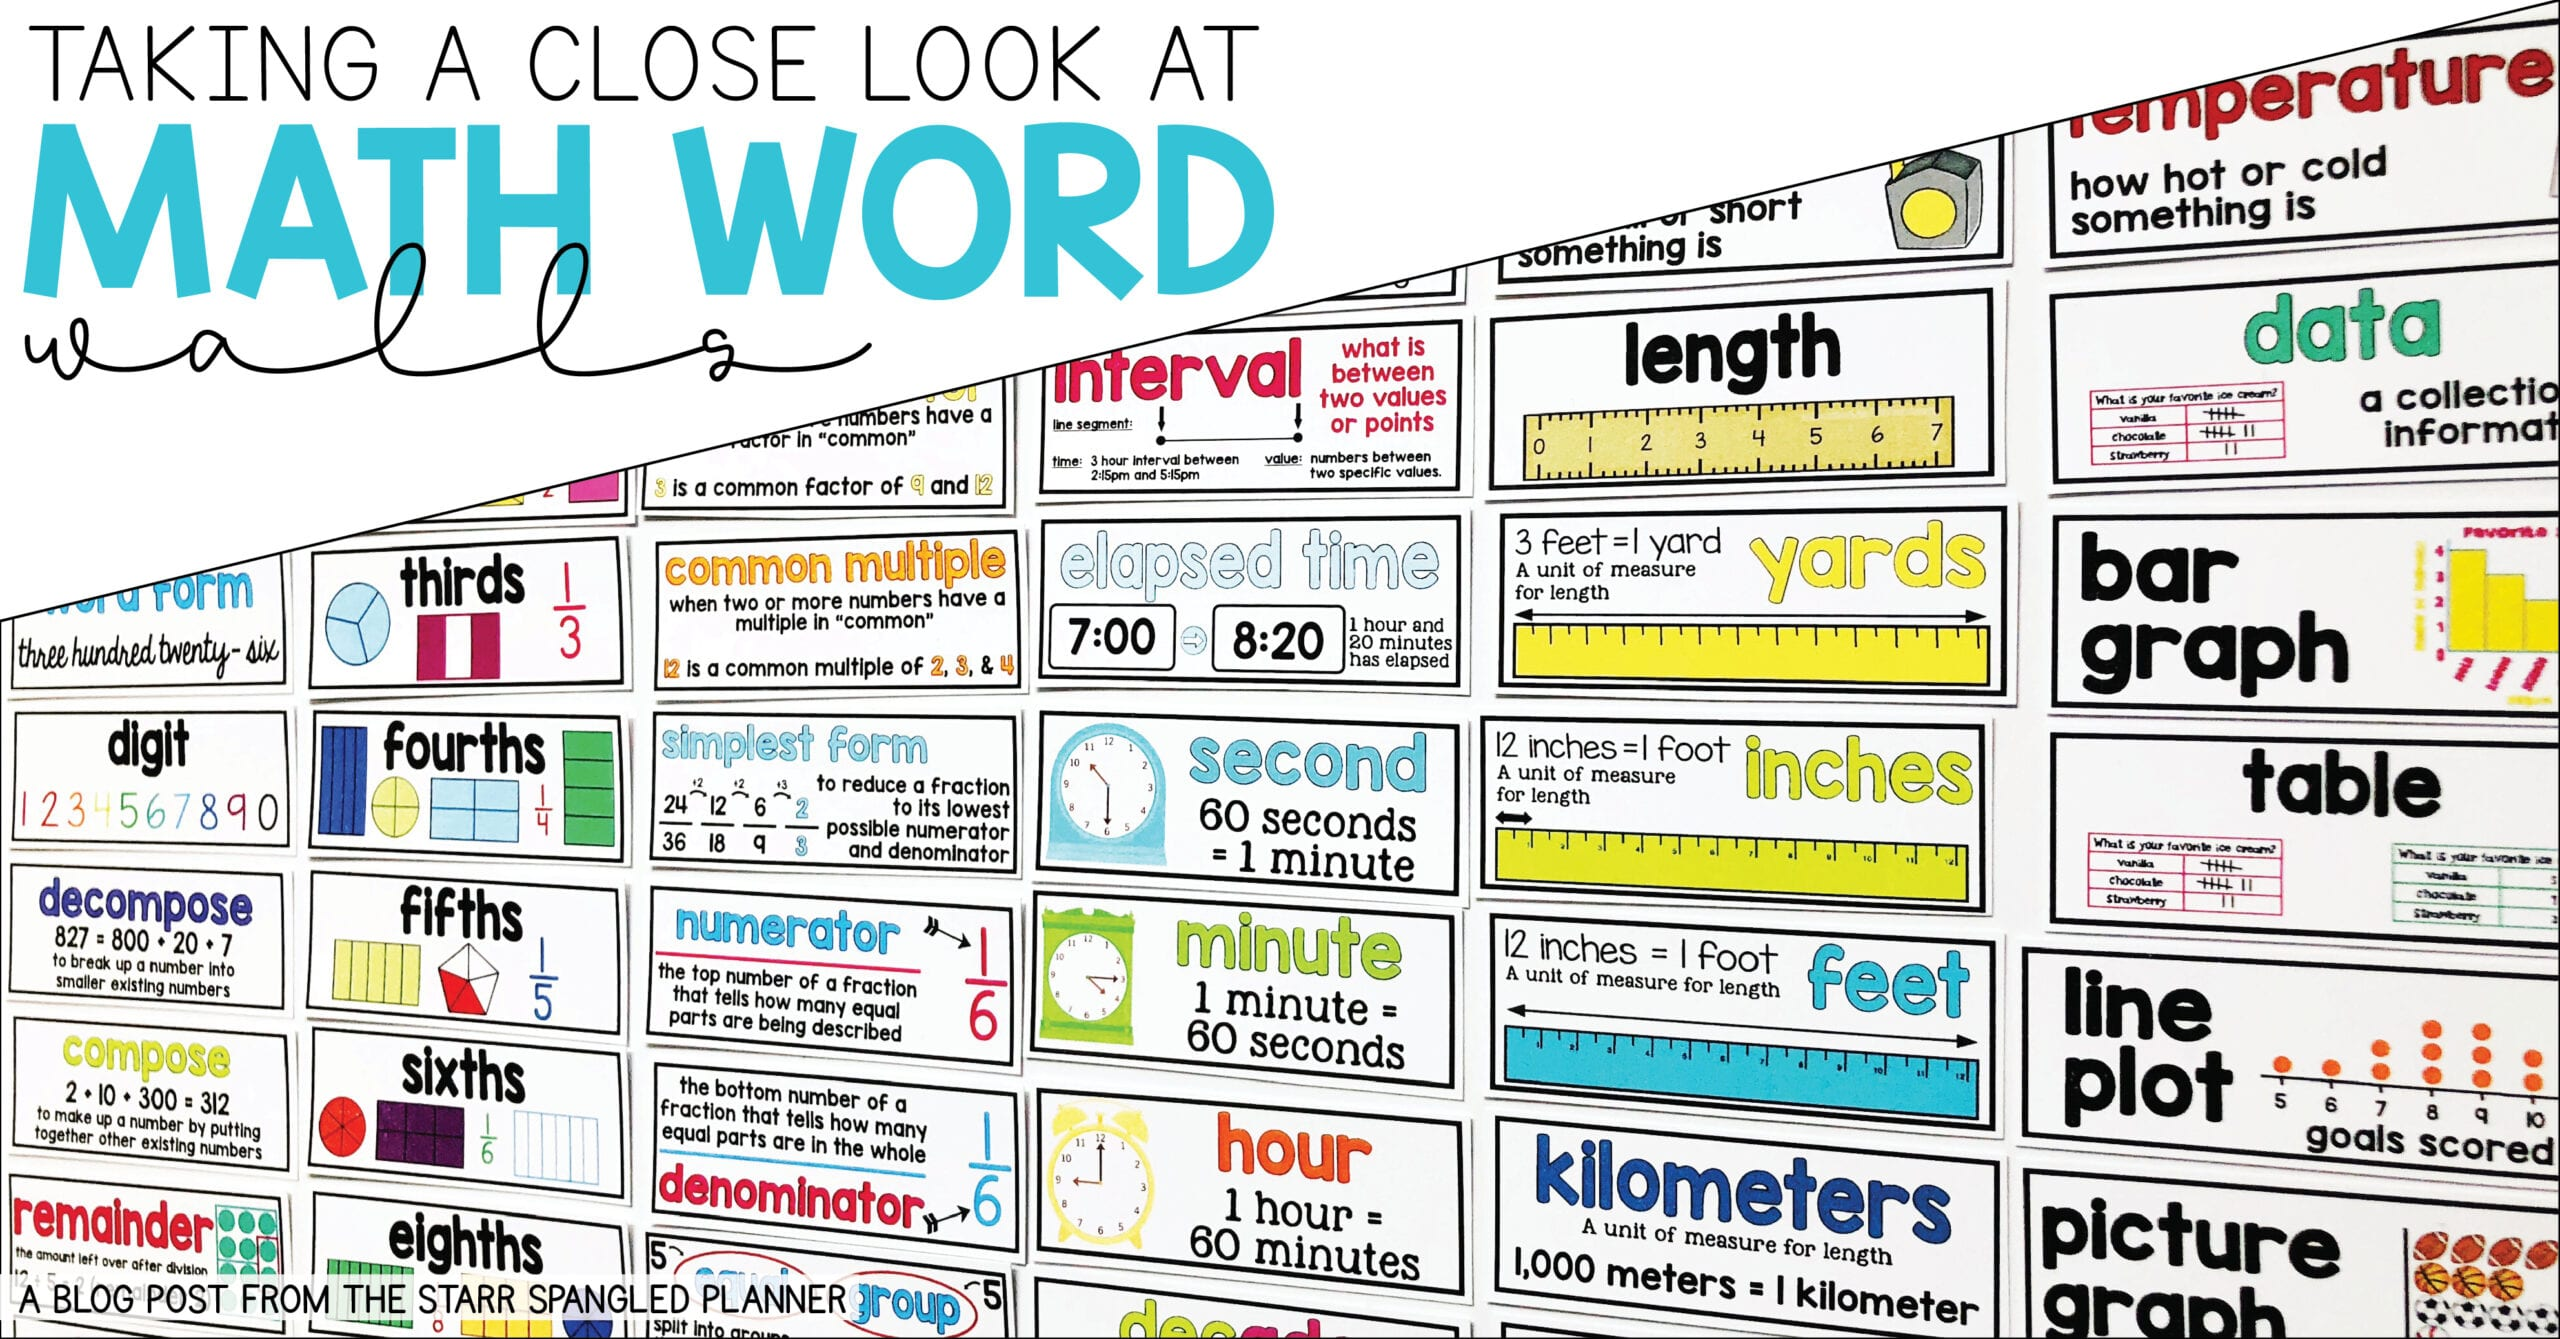 Using Math Word Walls in the classroom to teach math vocabulary